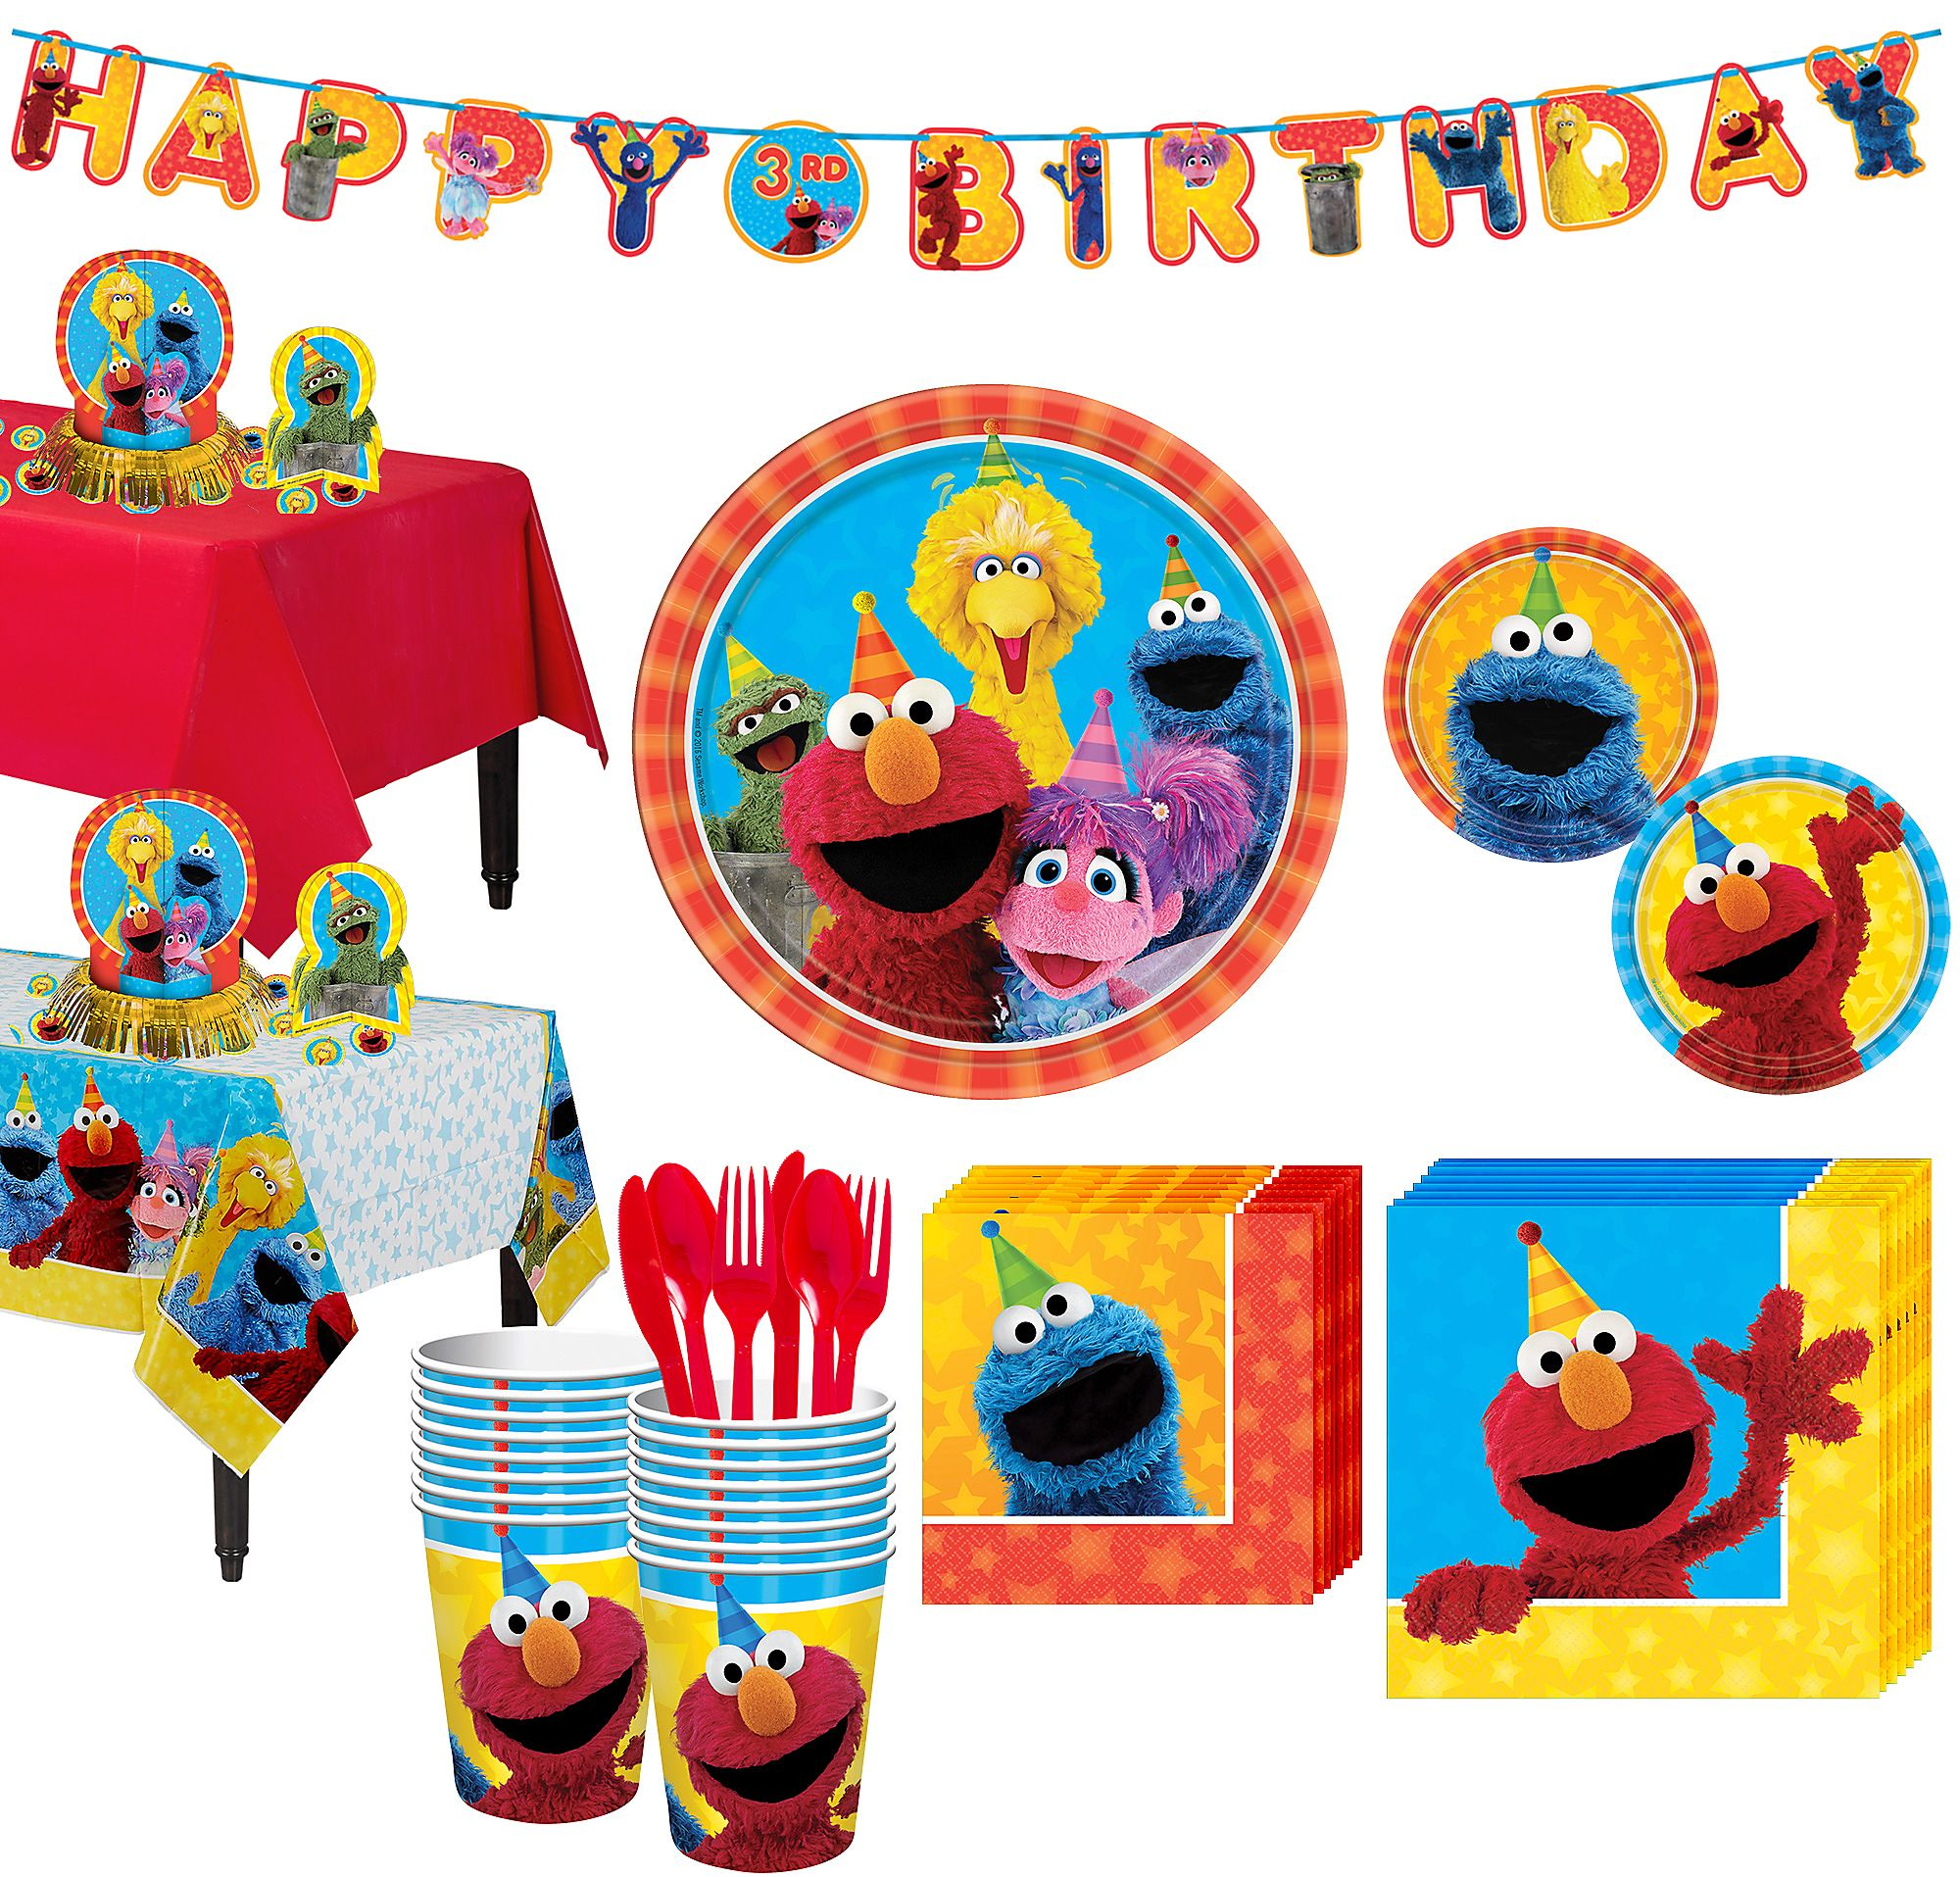 Sesame street party clipart clip free Sesame Street Birthday Party Supplies 16 Guest Plates Cups ... clip free